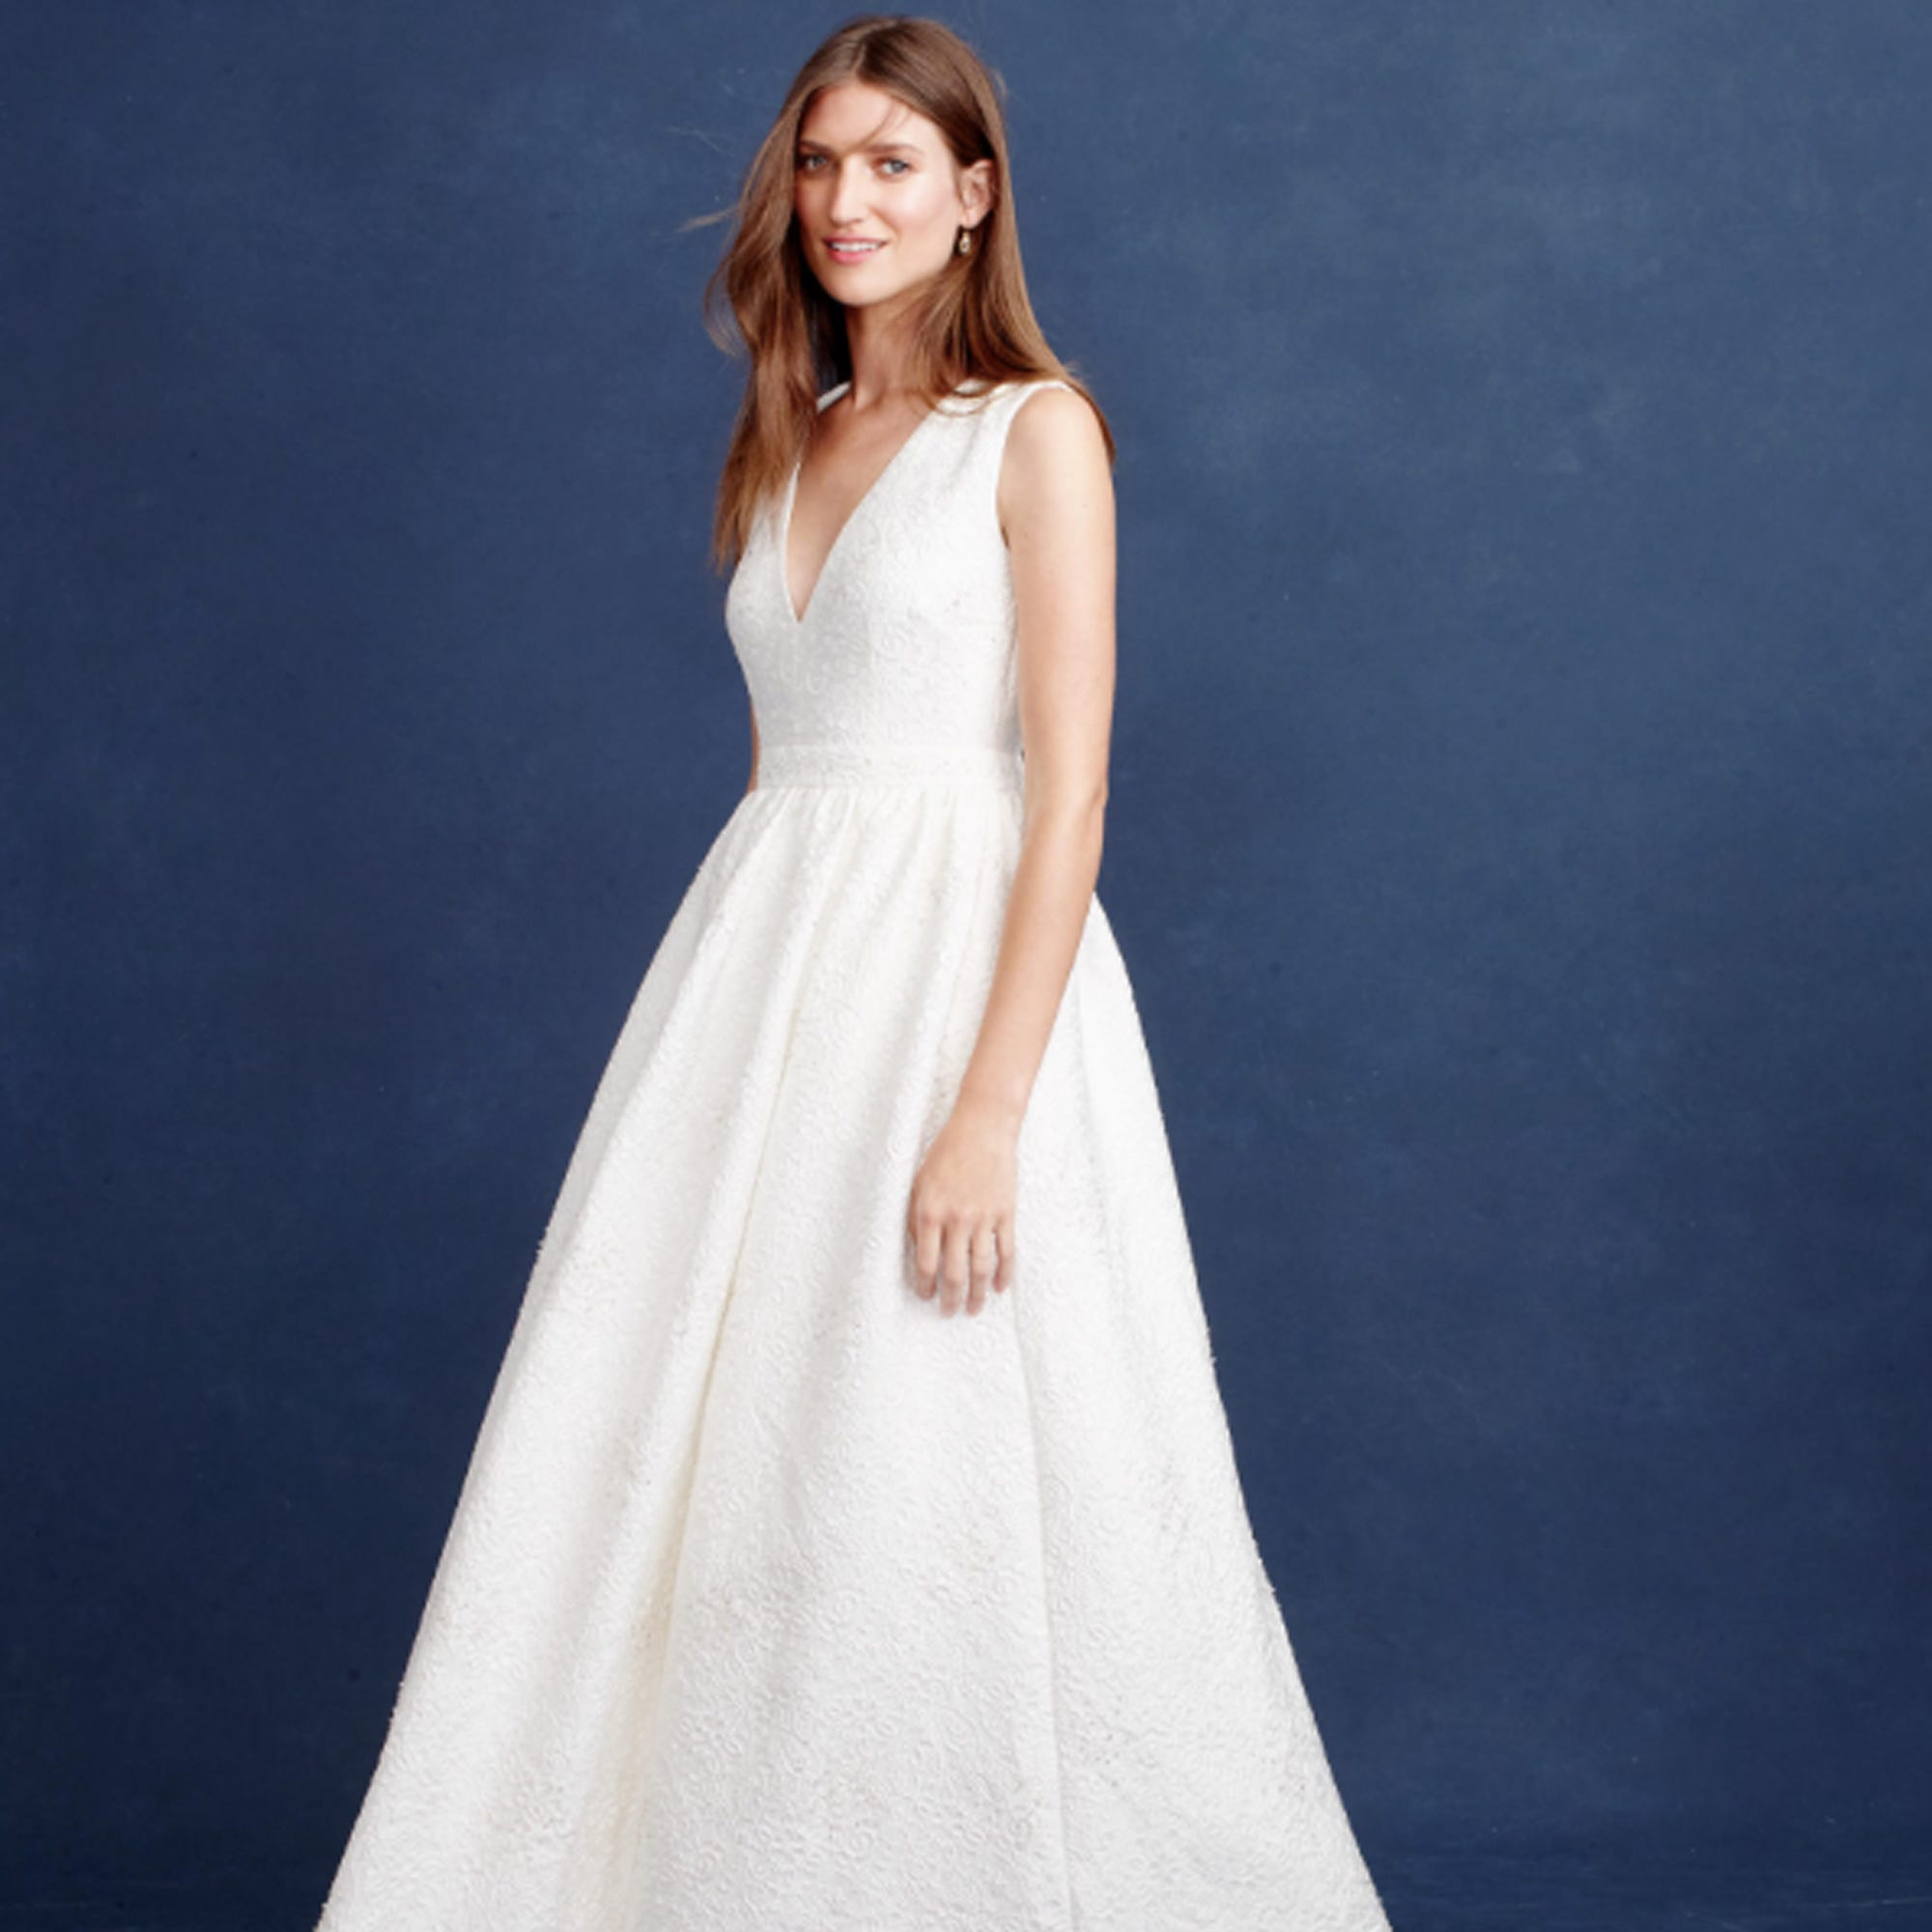 J crew discontinues bridal collection ombrellifo Choice Image